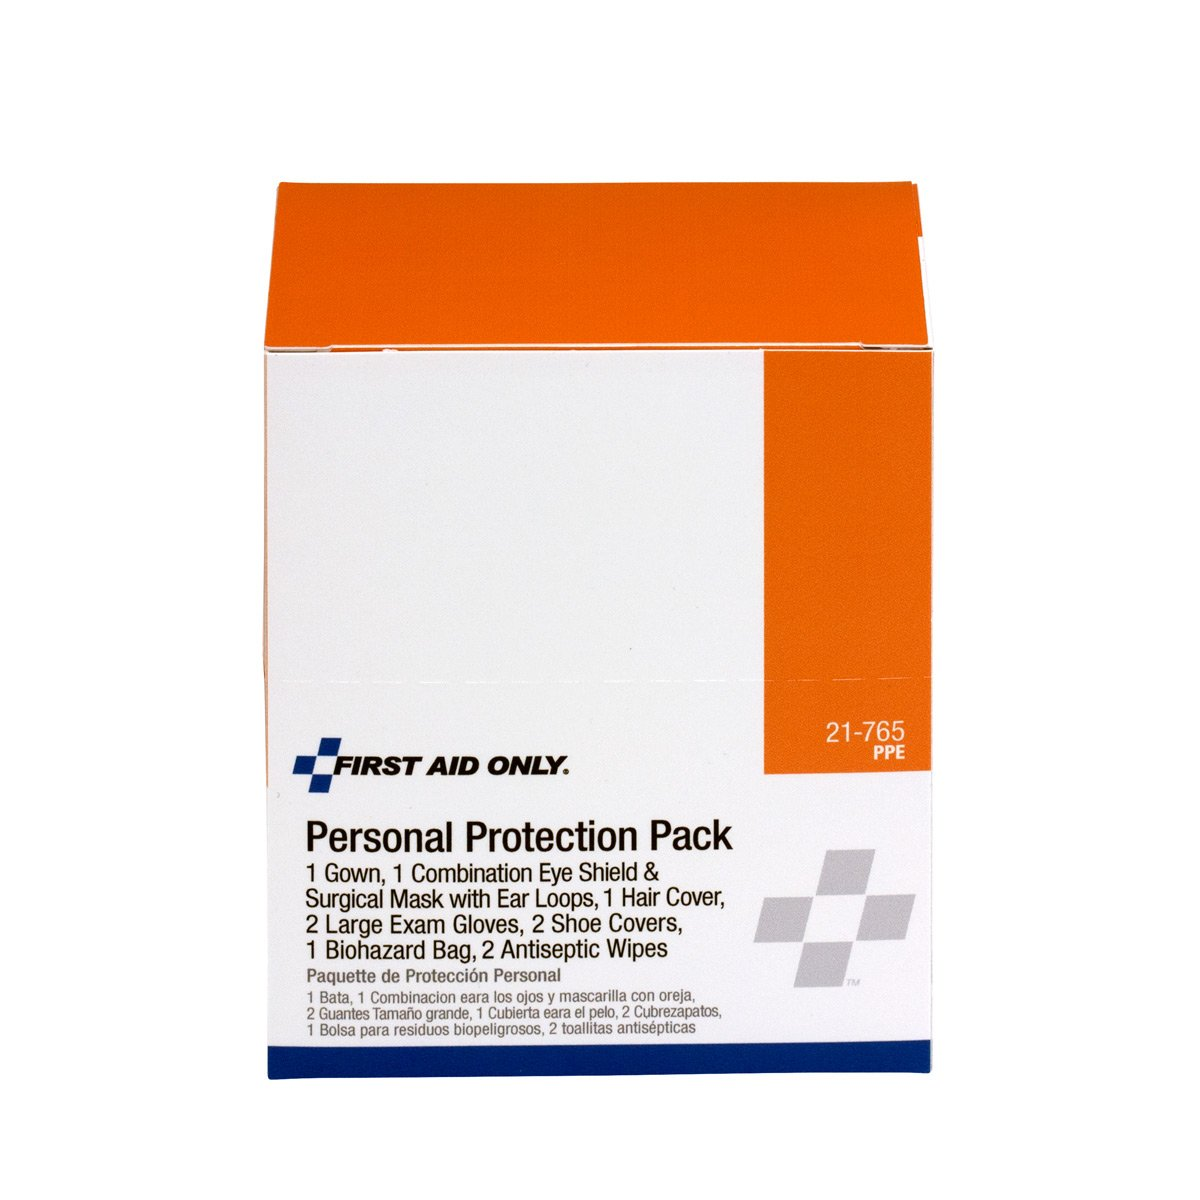 Pac-Kit by First Aid Only 21-765 7 Piece BBP Protective Apparel Pack: Science Lab First Aid Supplies: Amazon.com: Industrial & Scientific